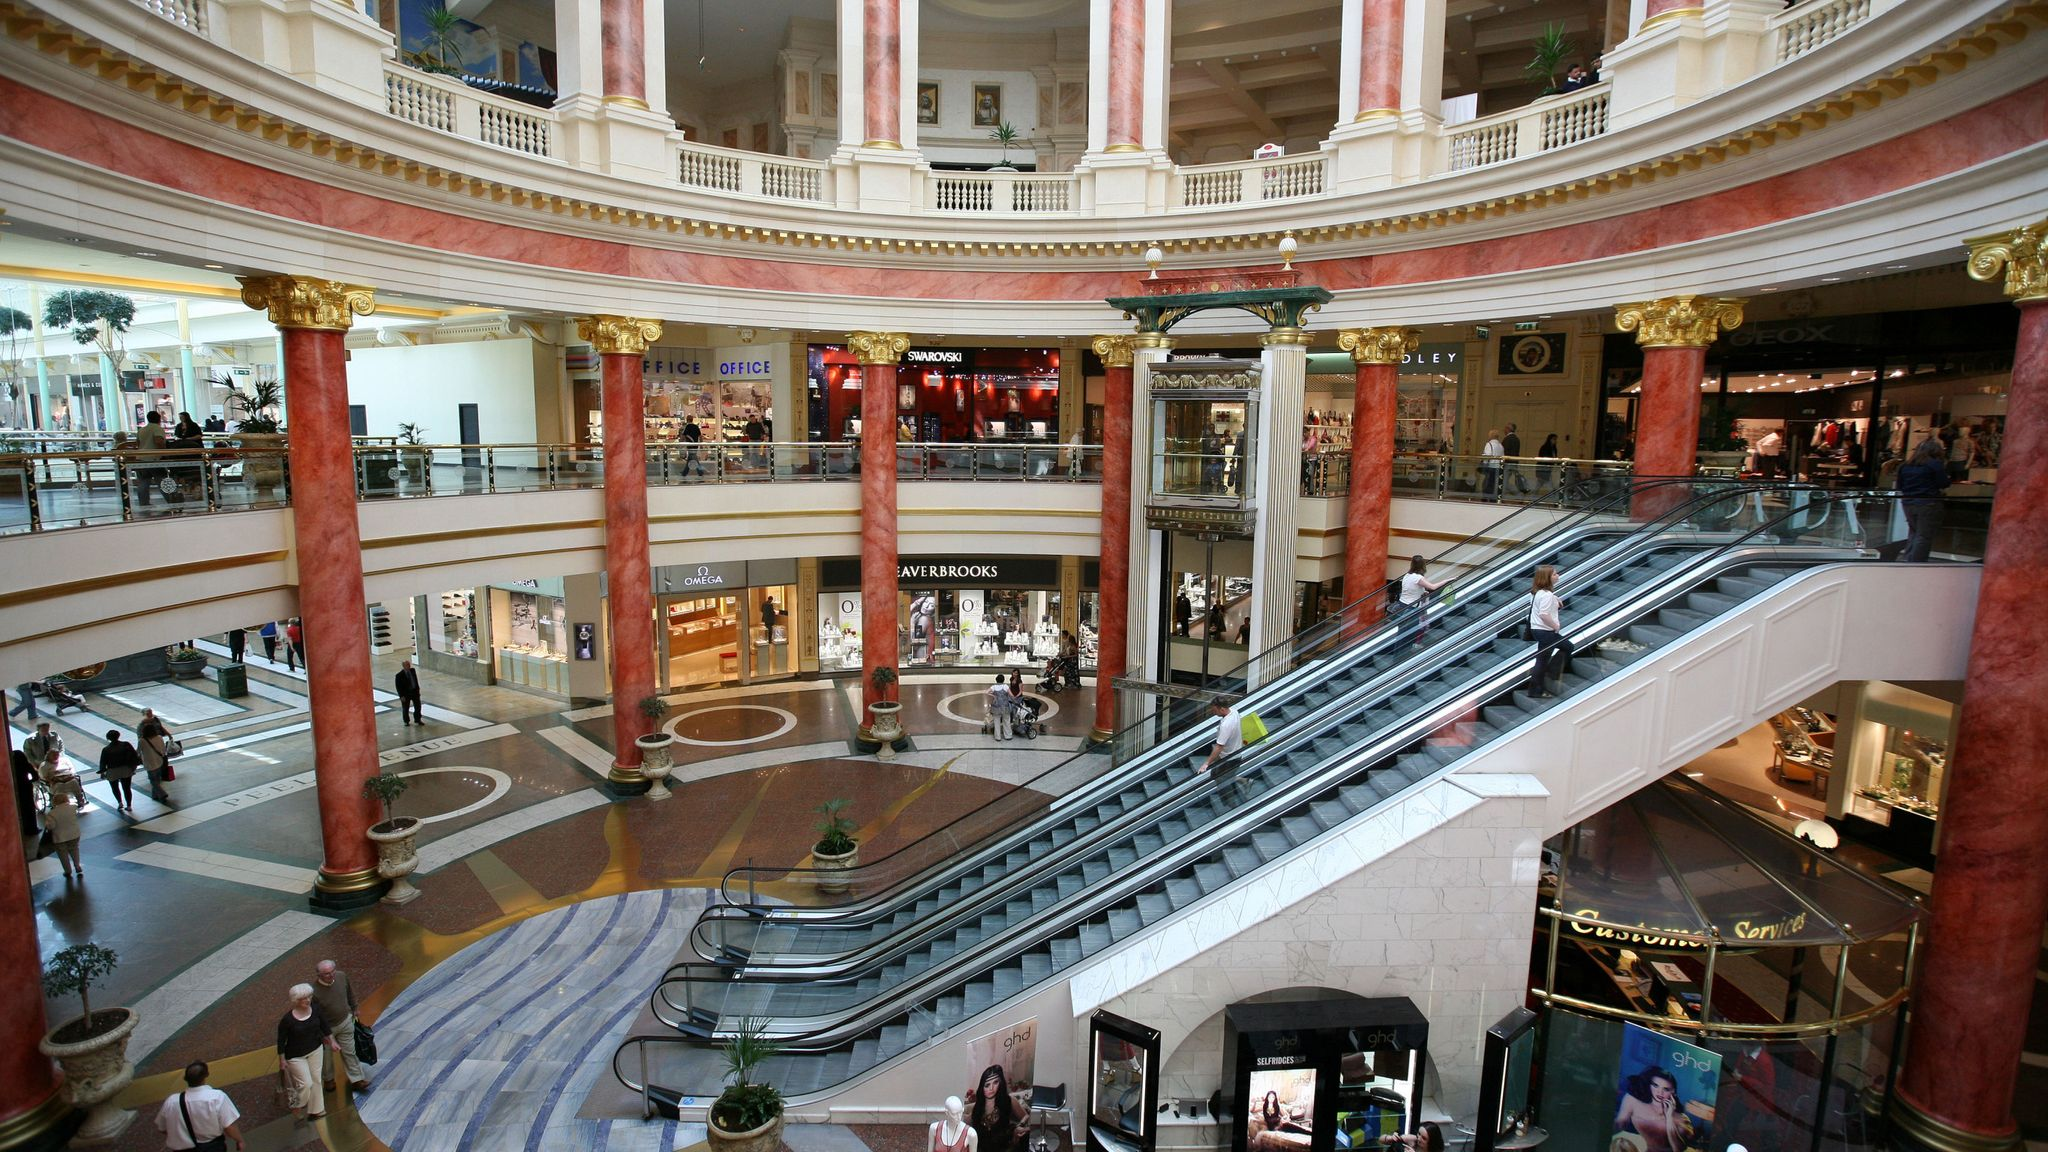 Intu shares soar on news of possible multibillion-pound takeover